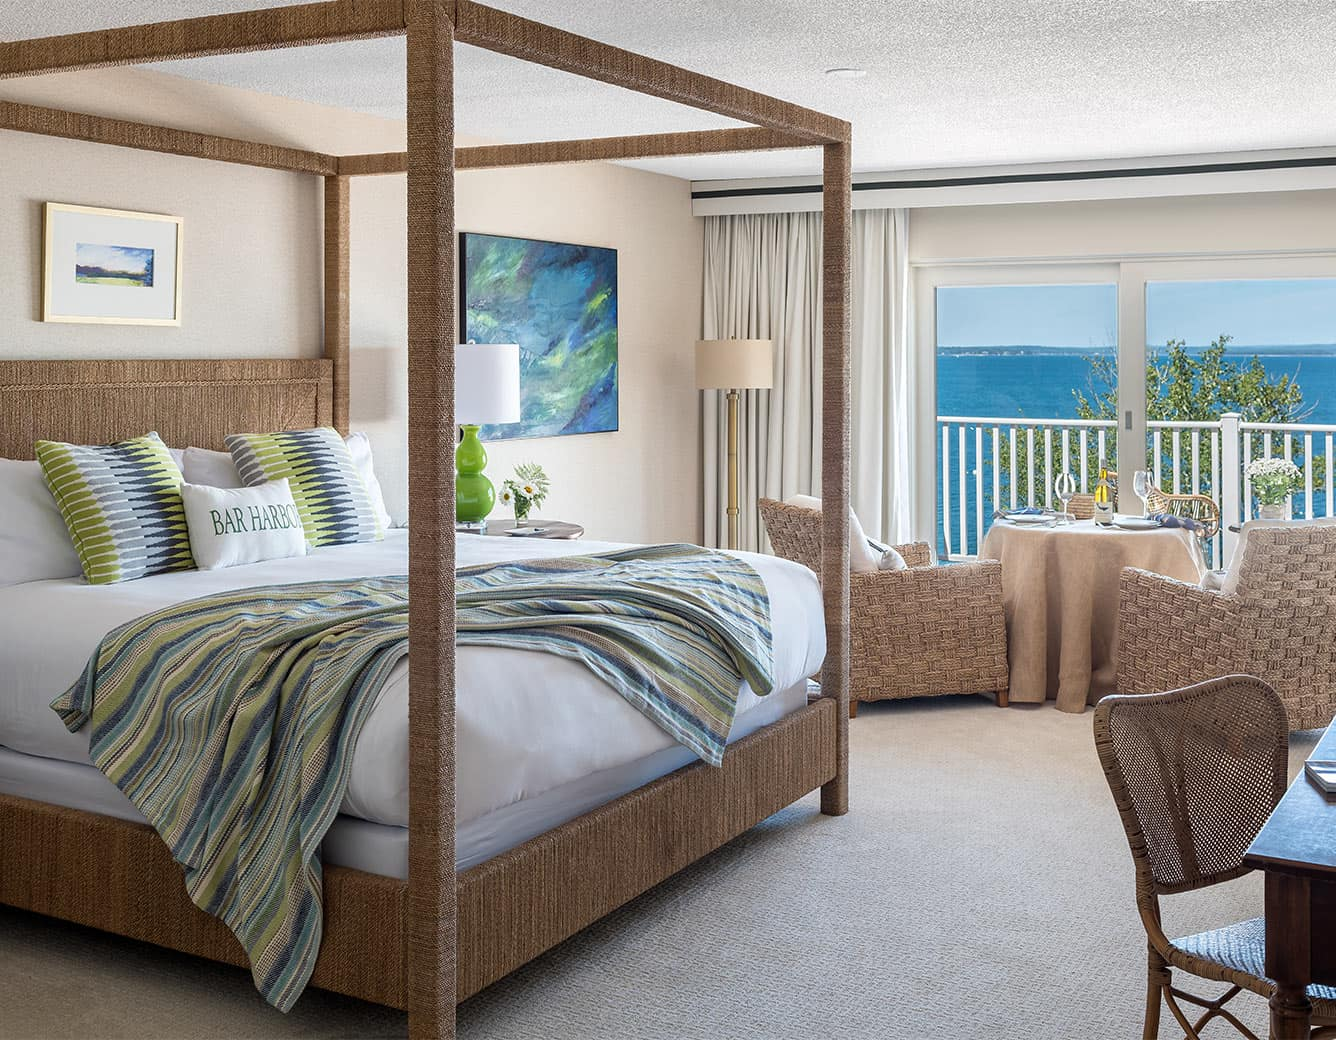 King Bed and chairs and oceanfront view